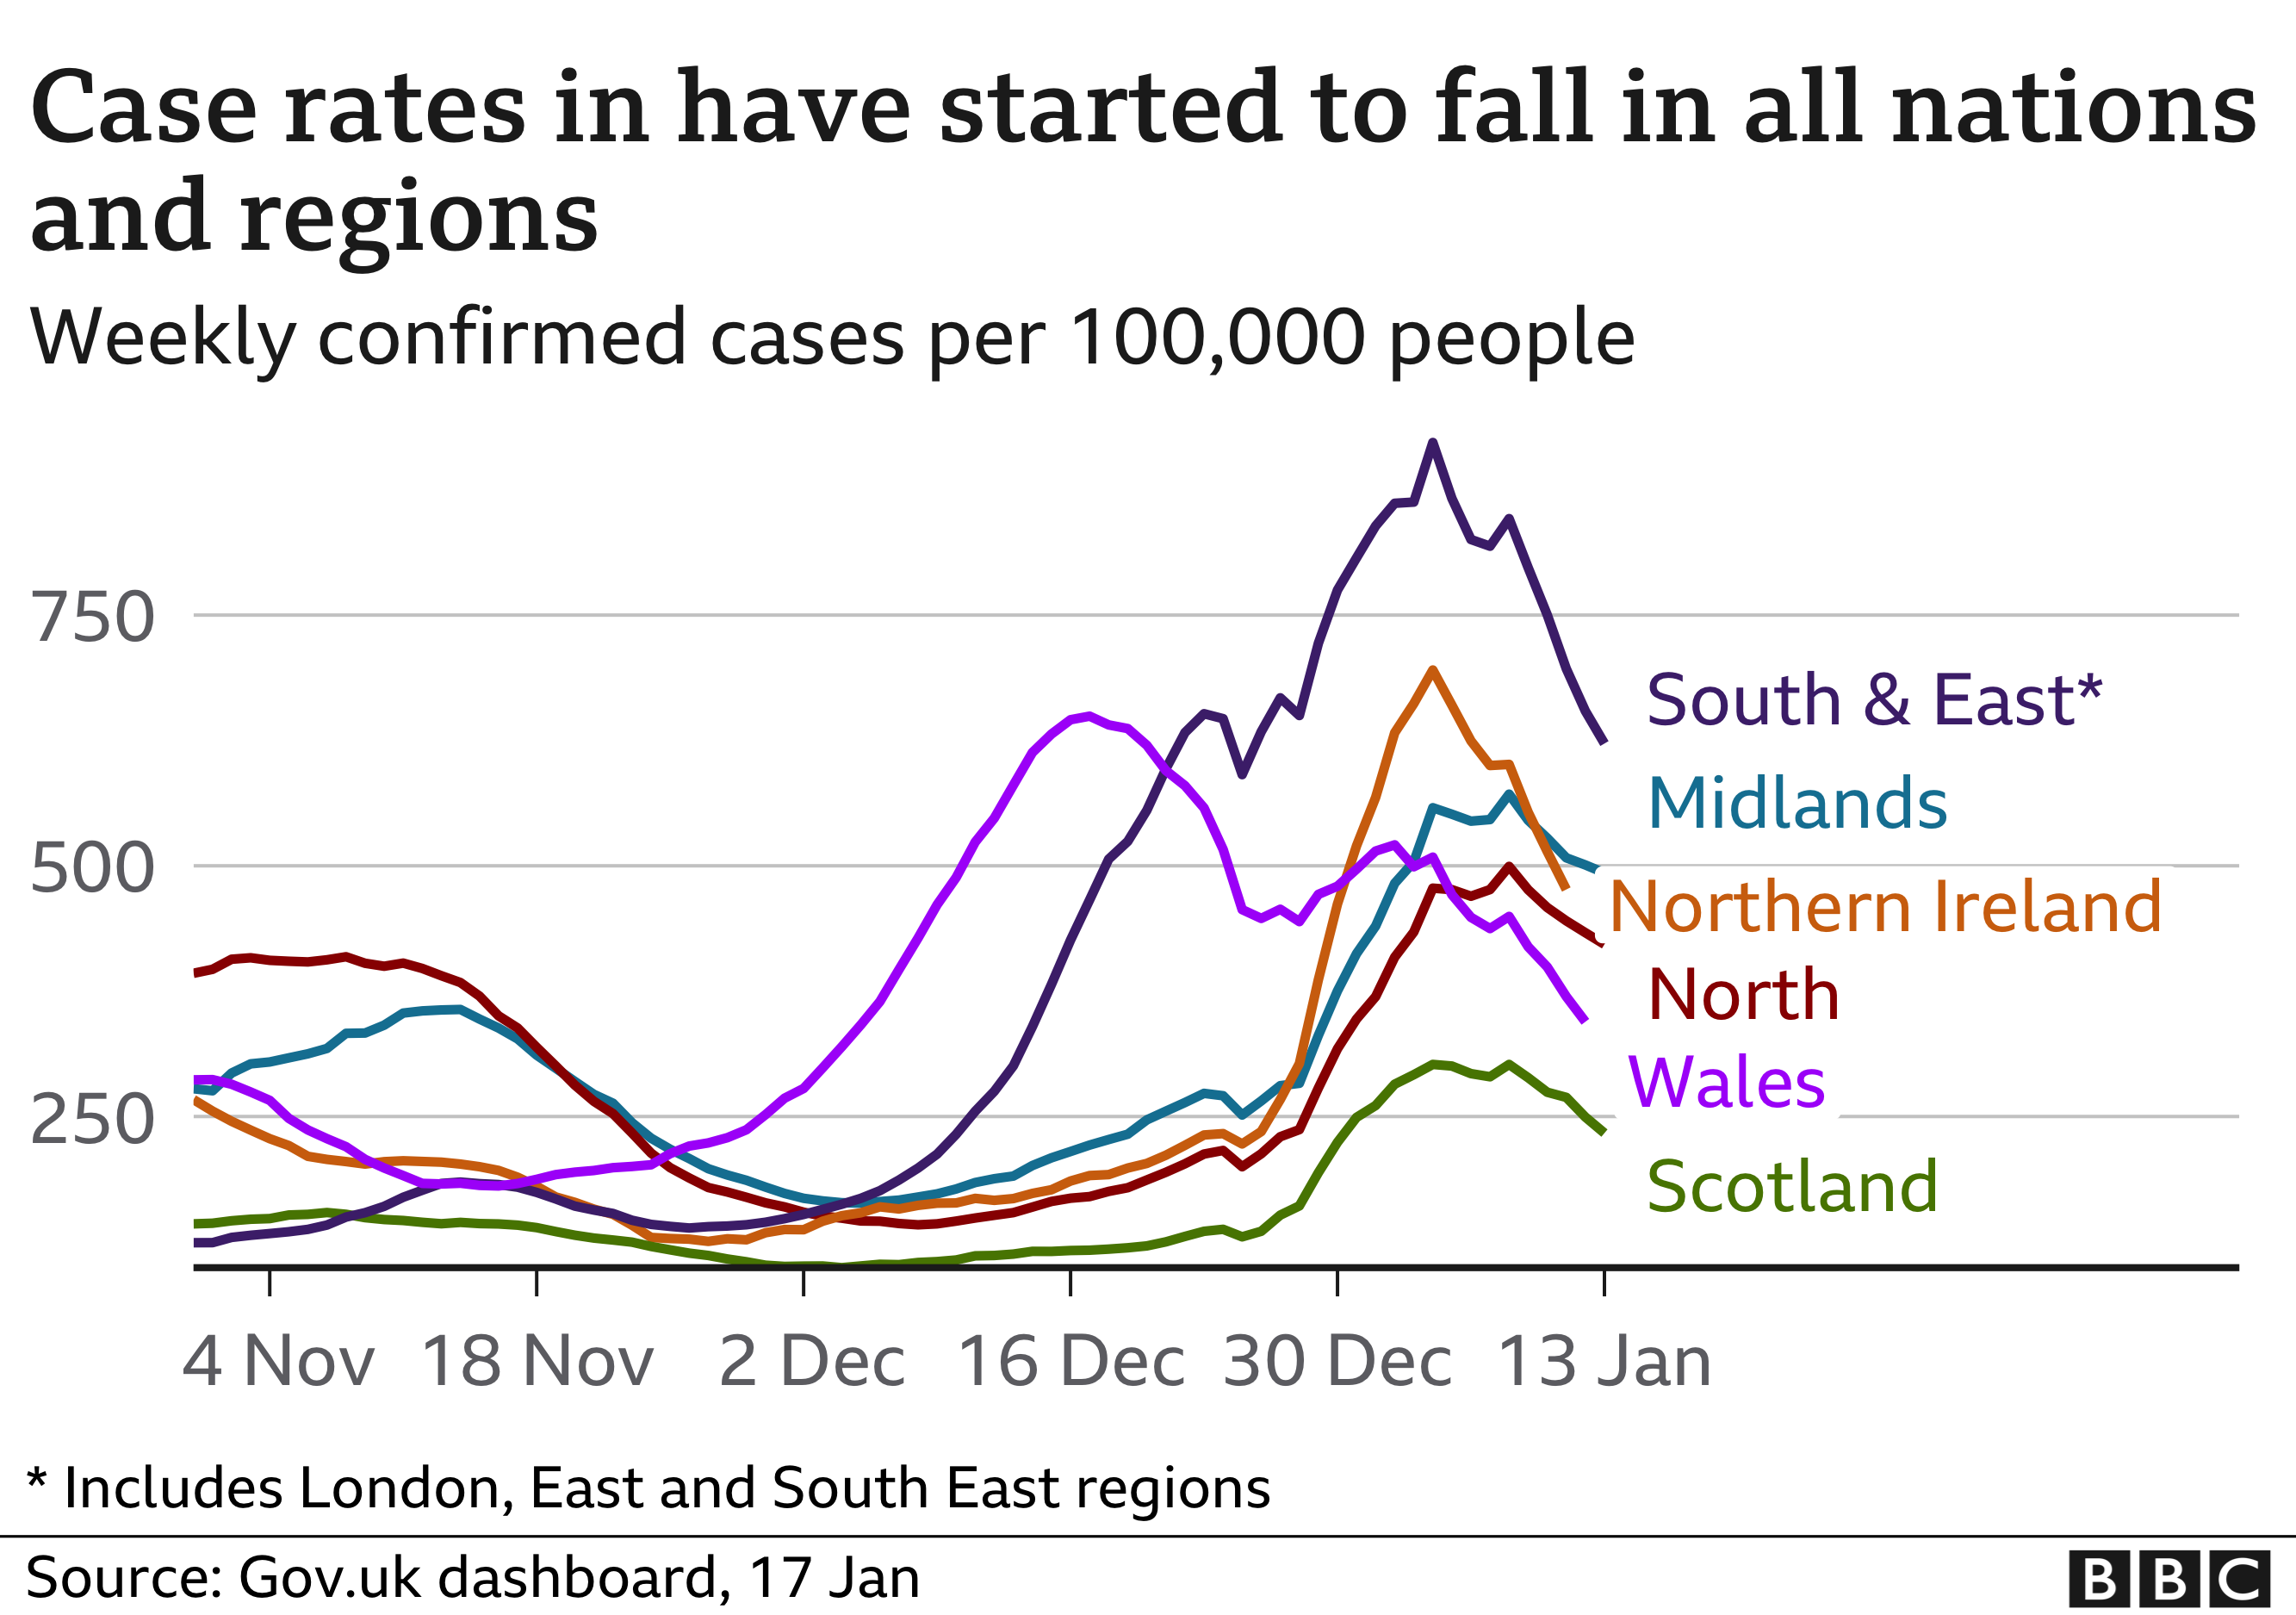 Chart showing early signs that cases may be falling in some regions and nations of the UK. Updated 17 Jan.